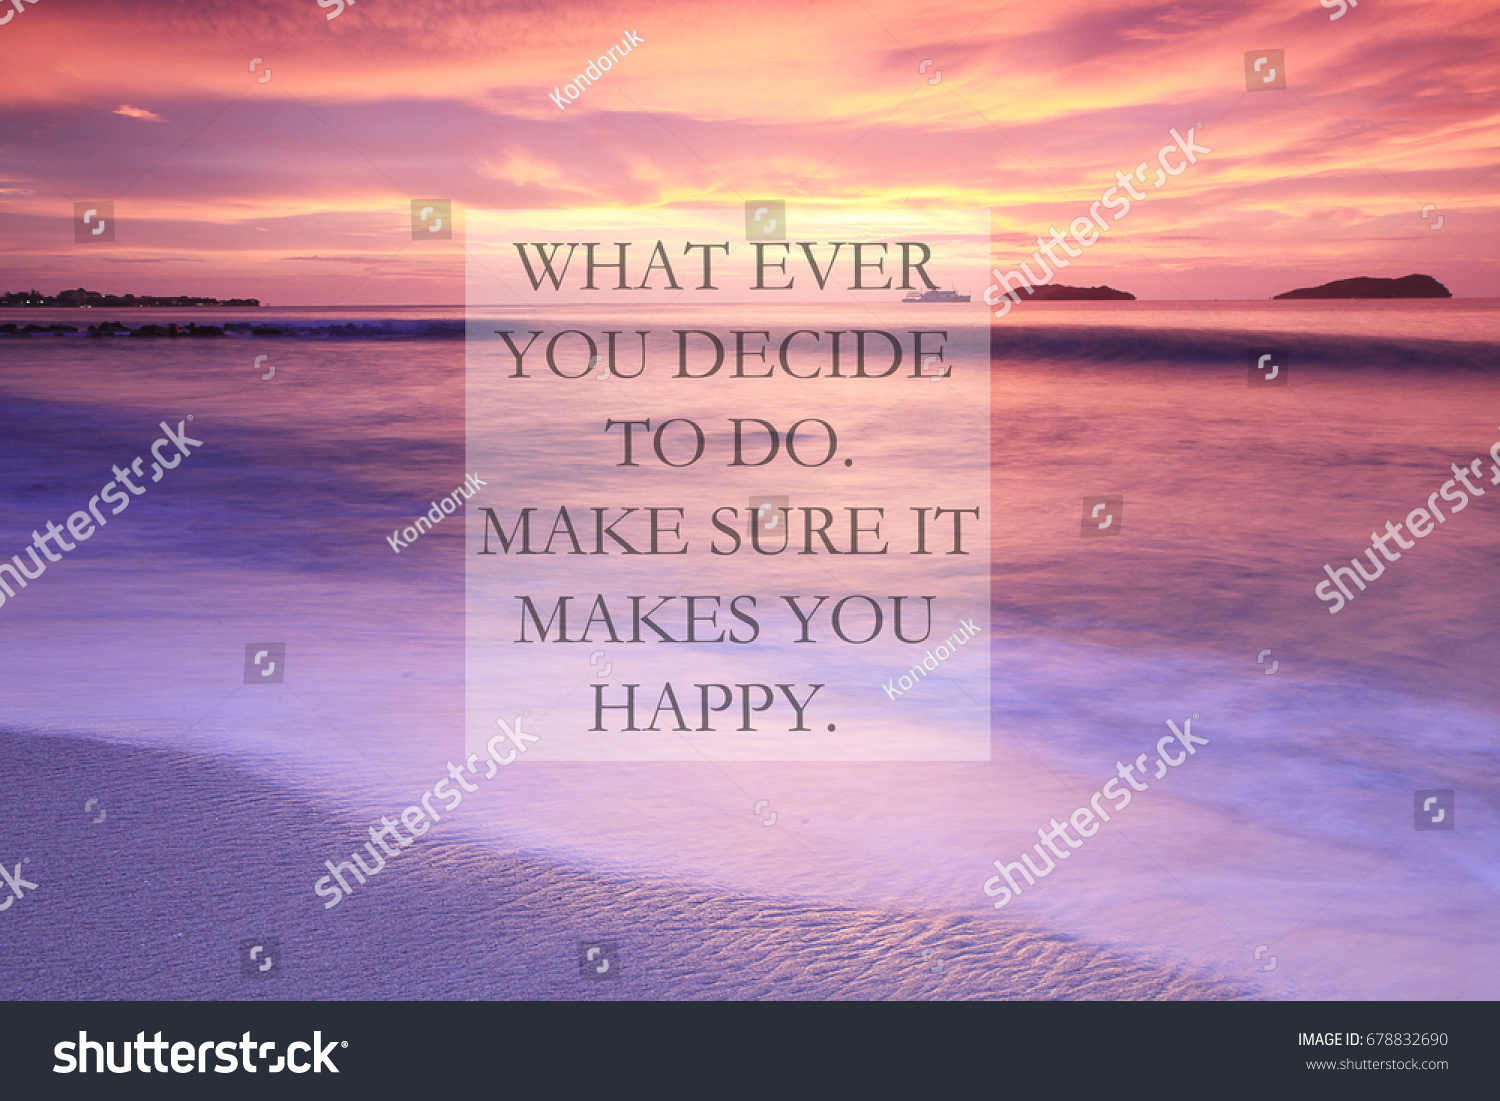 Blurry Sunset Beach Inspirational Quotes What Stock Photo Edit Now